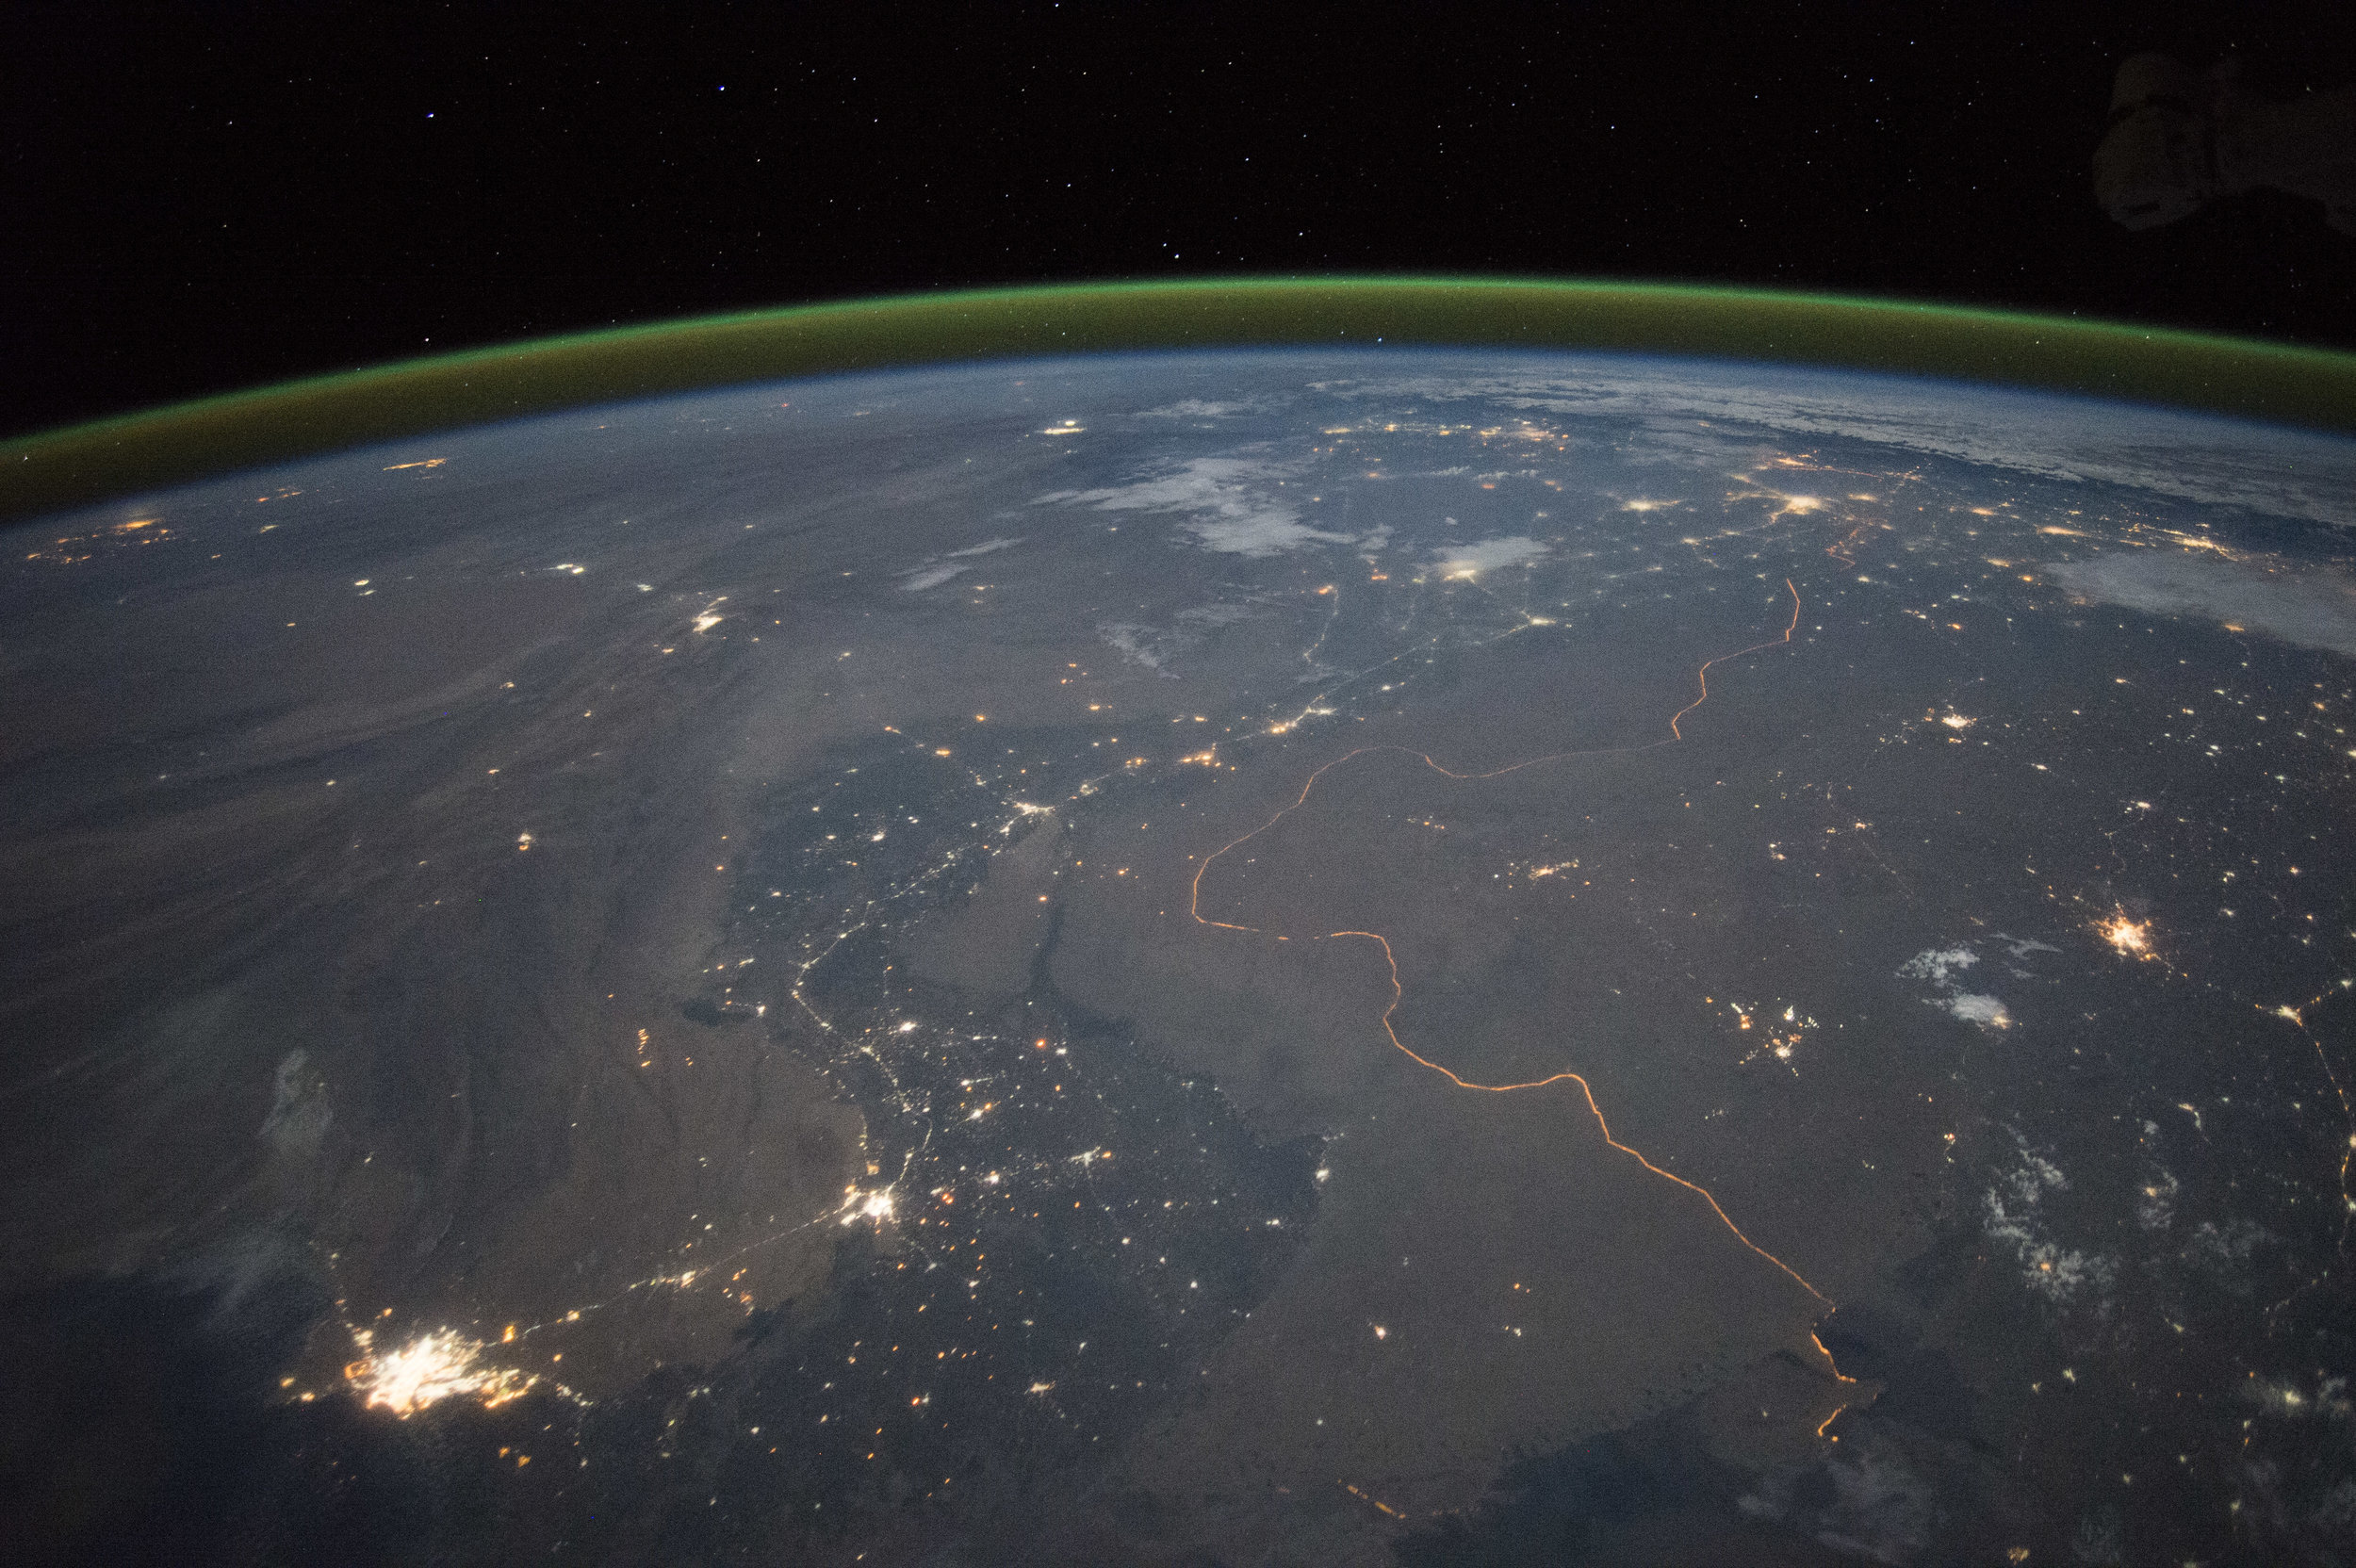 Nighttime panorama showing Pakistan's Indus River valley, taken from space. The green band above the horizon is airglow. - Image Credits: NASA Earth Observatory